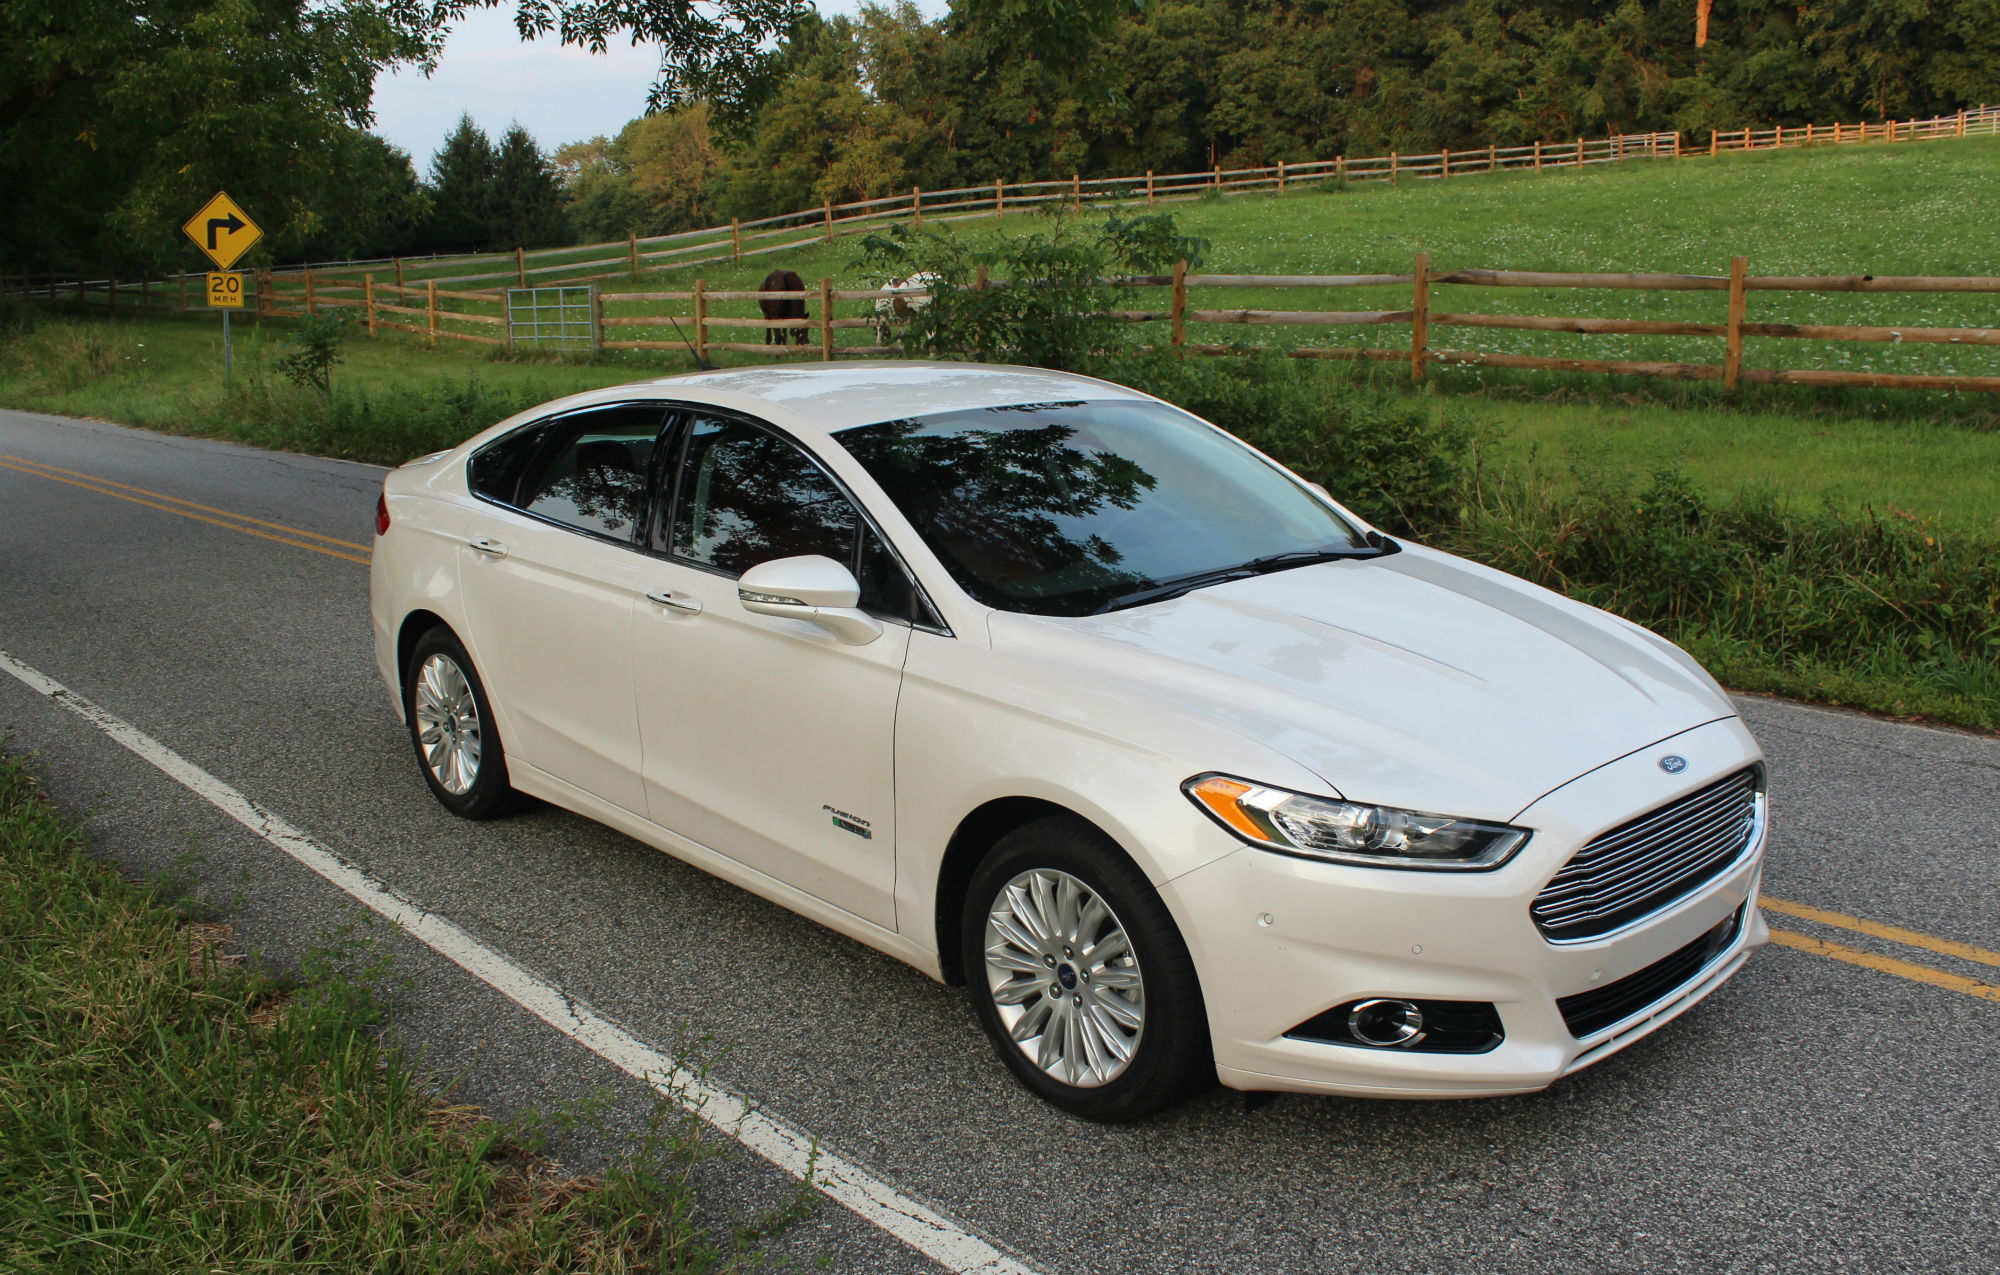 Ford s fusion energi enters its 2015 model year with only trim and feature updates and since its february 2013 launch has offered a solid balance among the